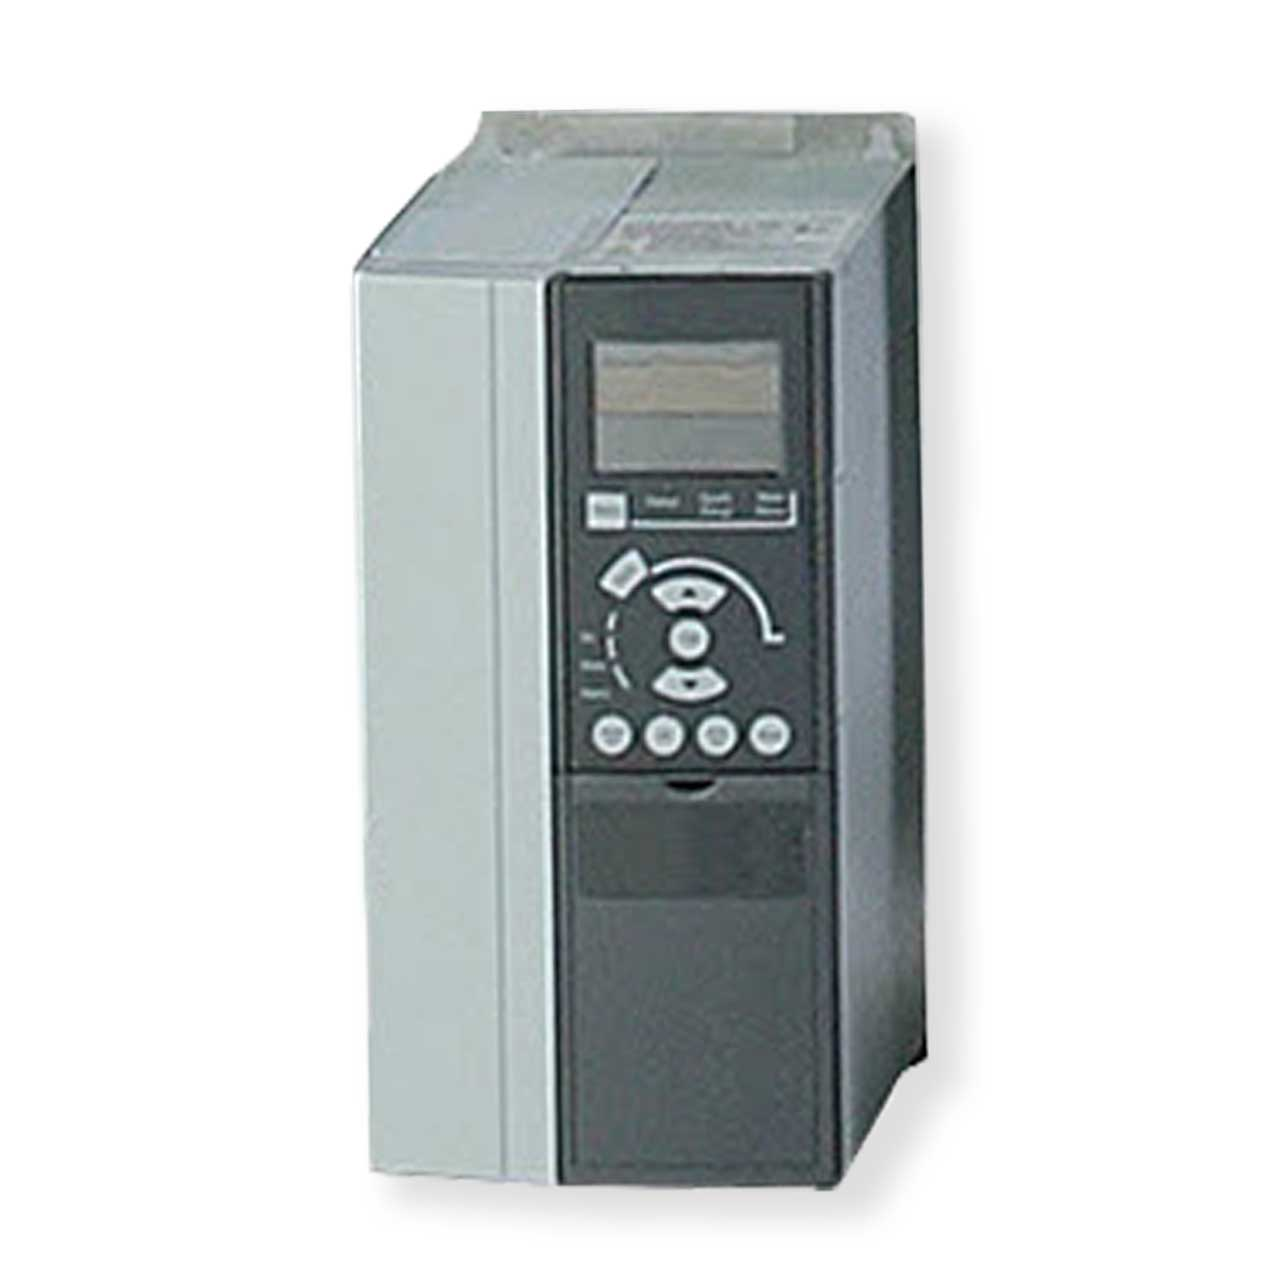 Well Pump Controllers | Pump Control Boxes For Sale